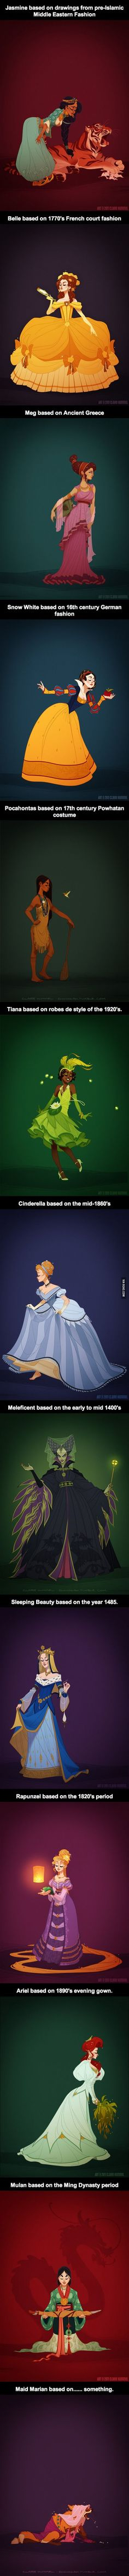 Disney Princesses Based on Historical Period Fashion: